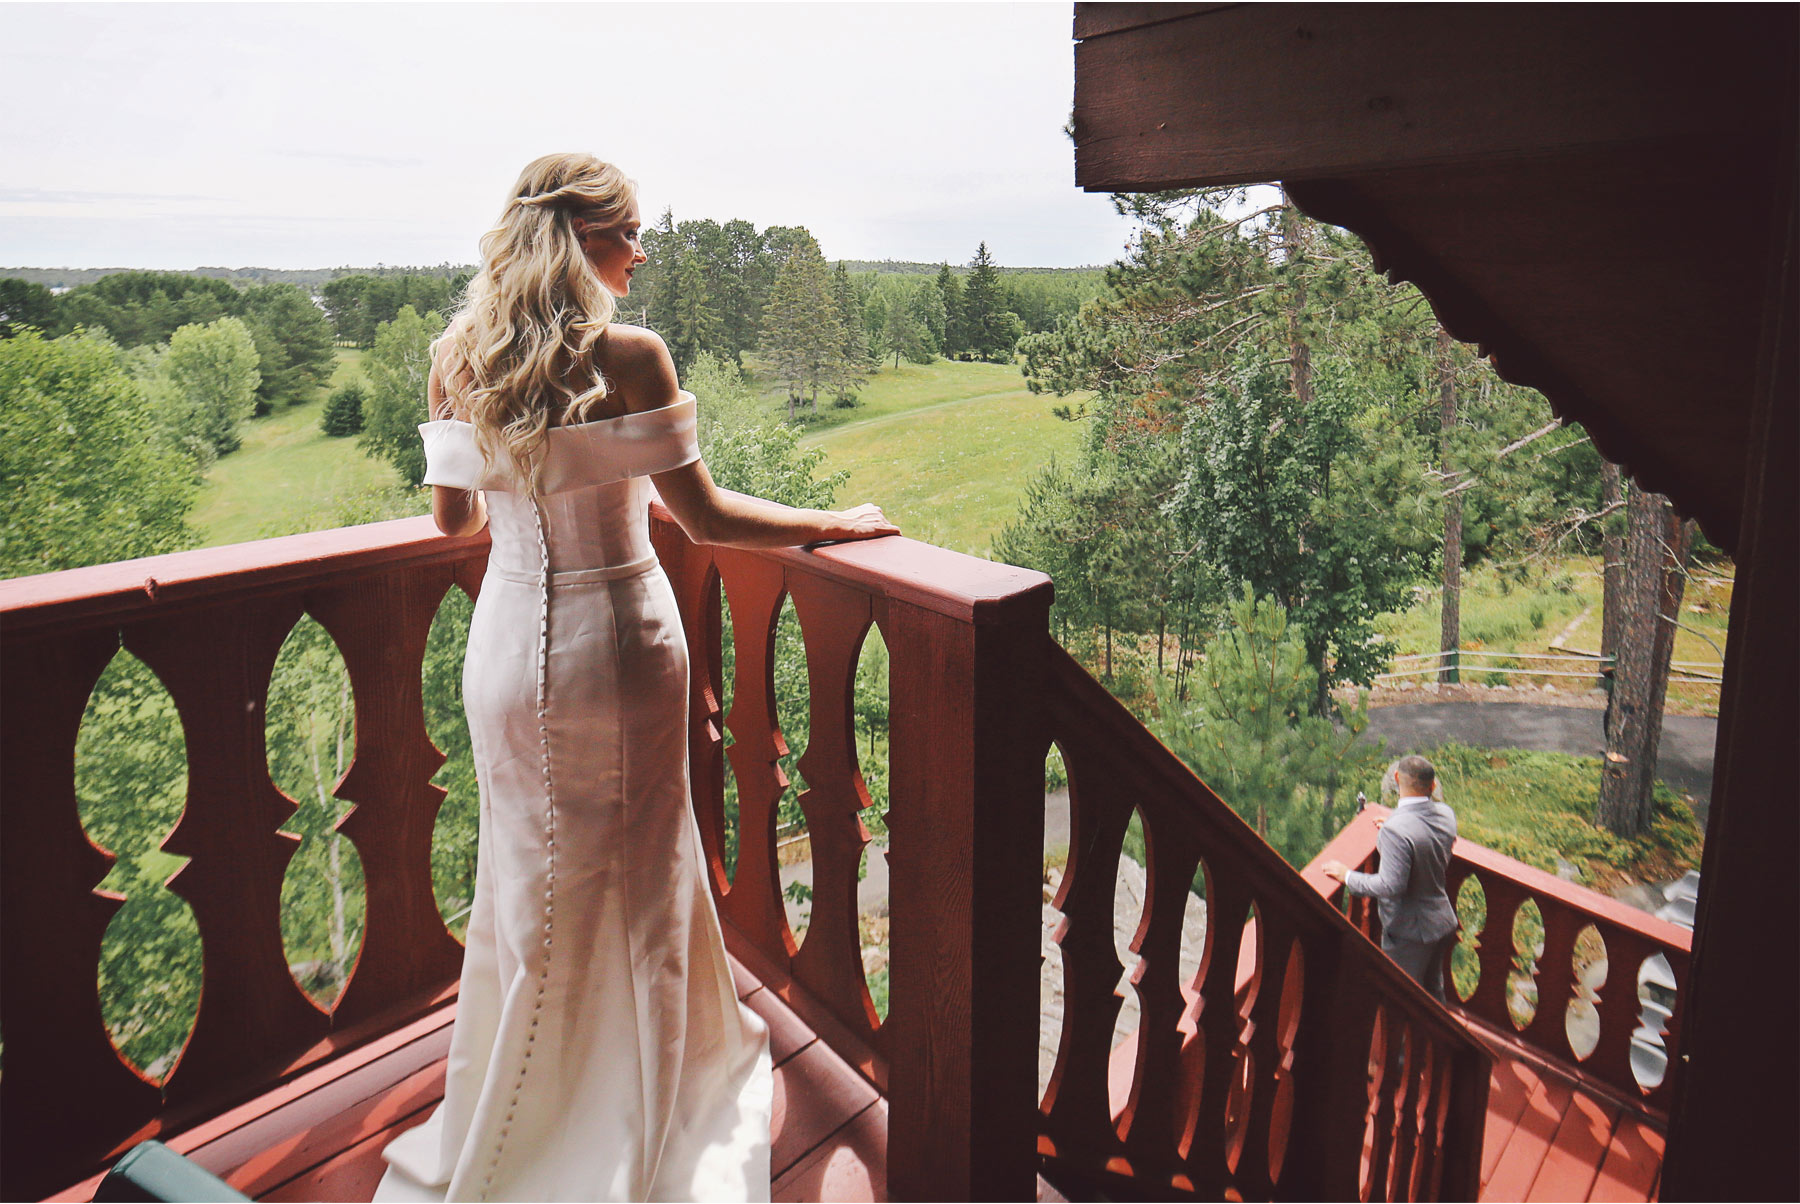 03-Ely-Minnesota-North-Wedding-by-Andrew-Vick-Photography-Bride-Groom-First-Look-Cabin-Katie-and-Joe.jpg